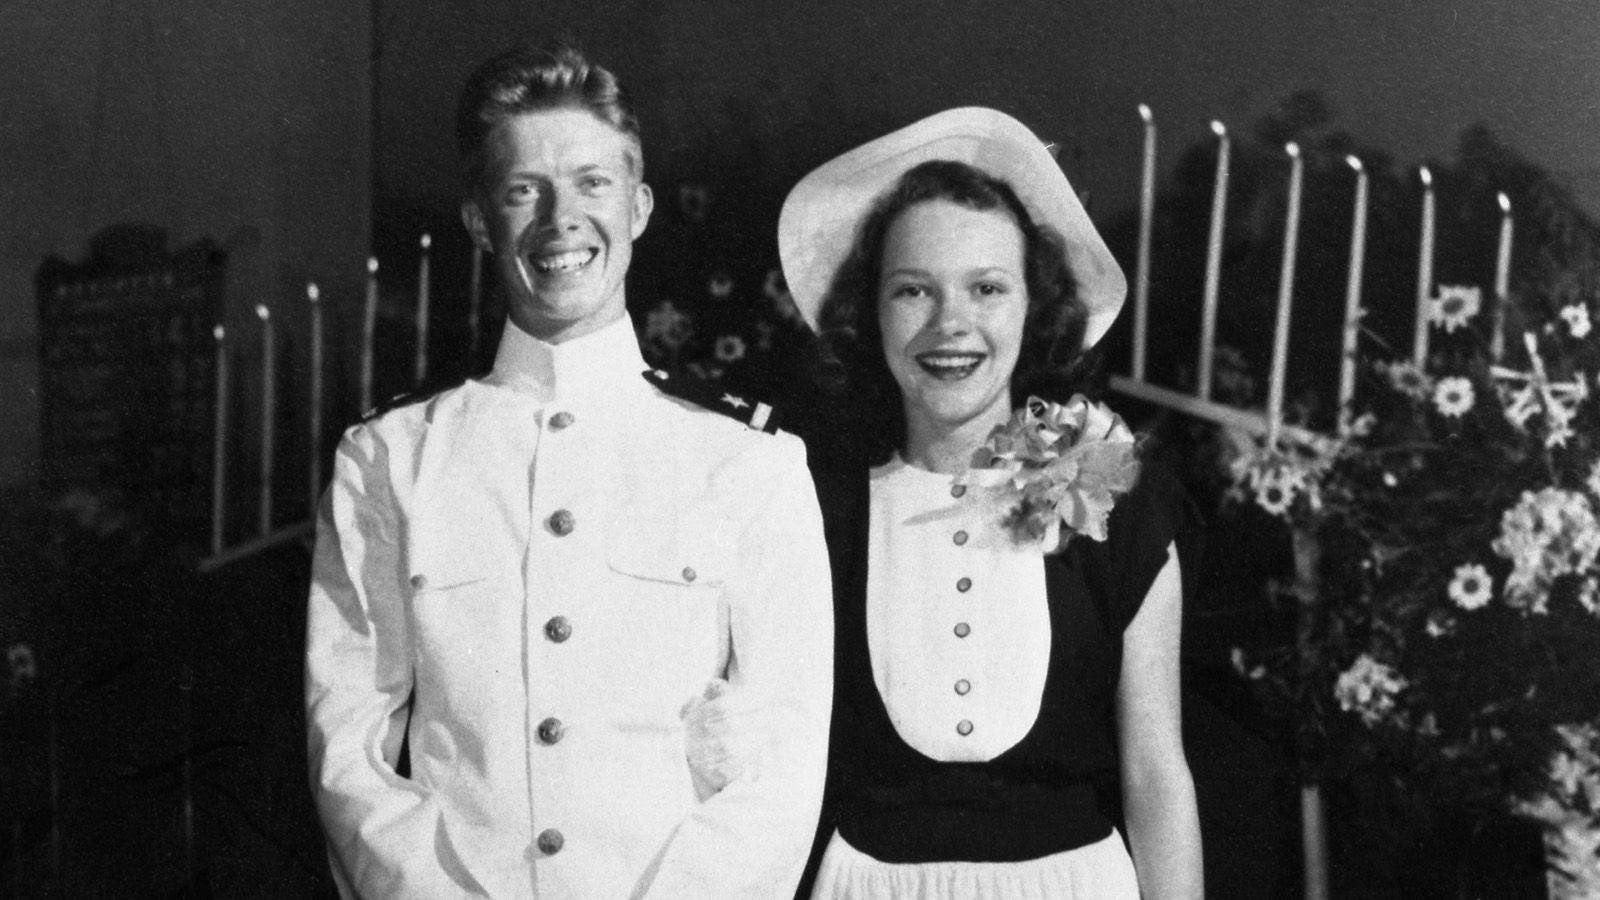 Jimmy and Rosalynn Carter: Love story of the longest married presidential couple